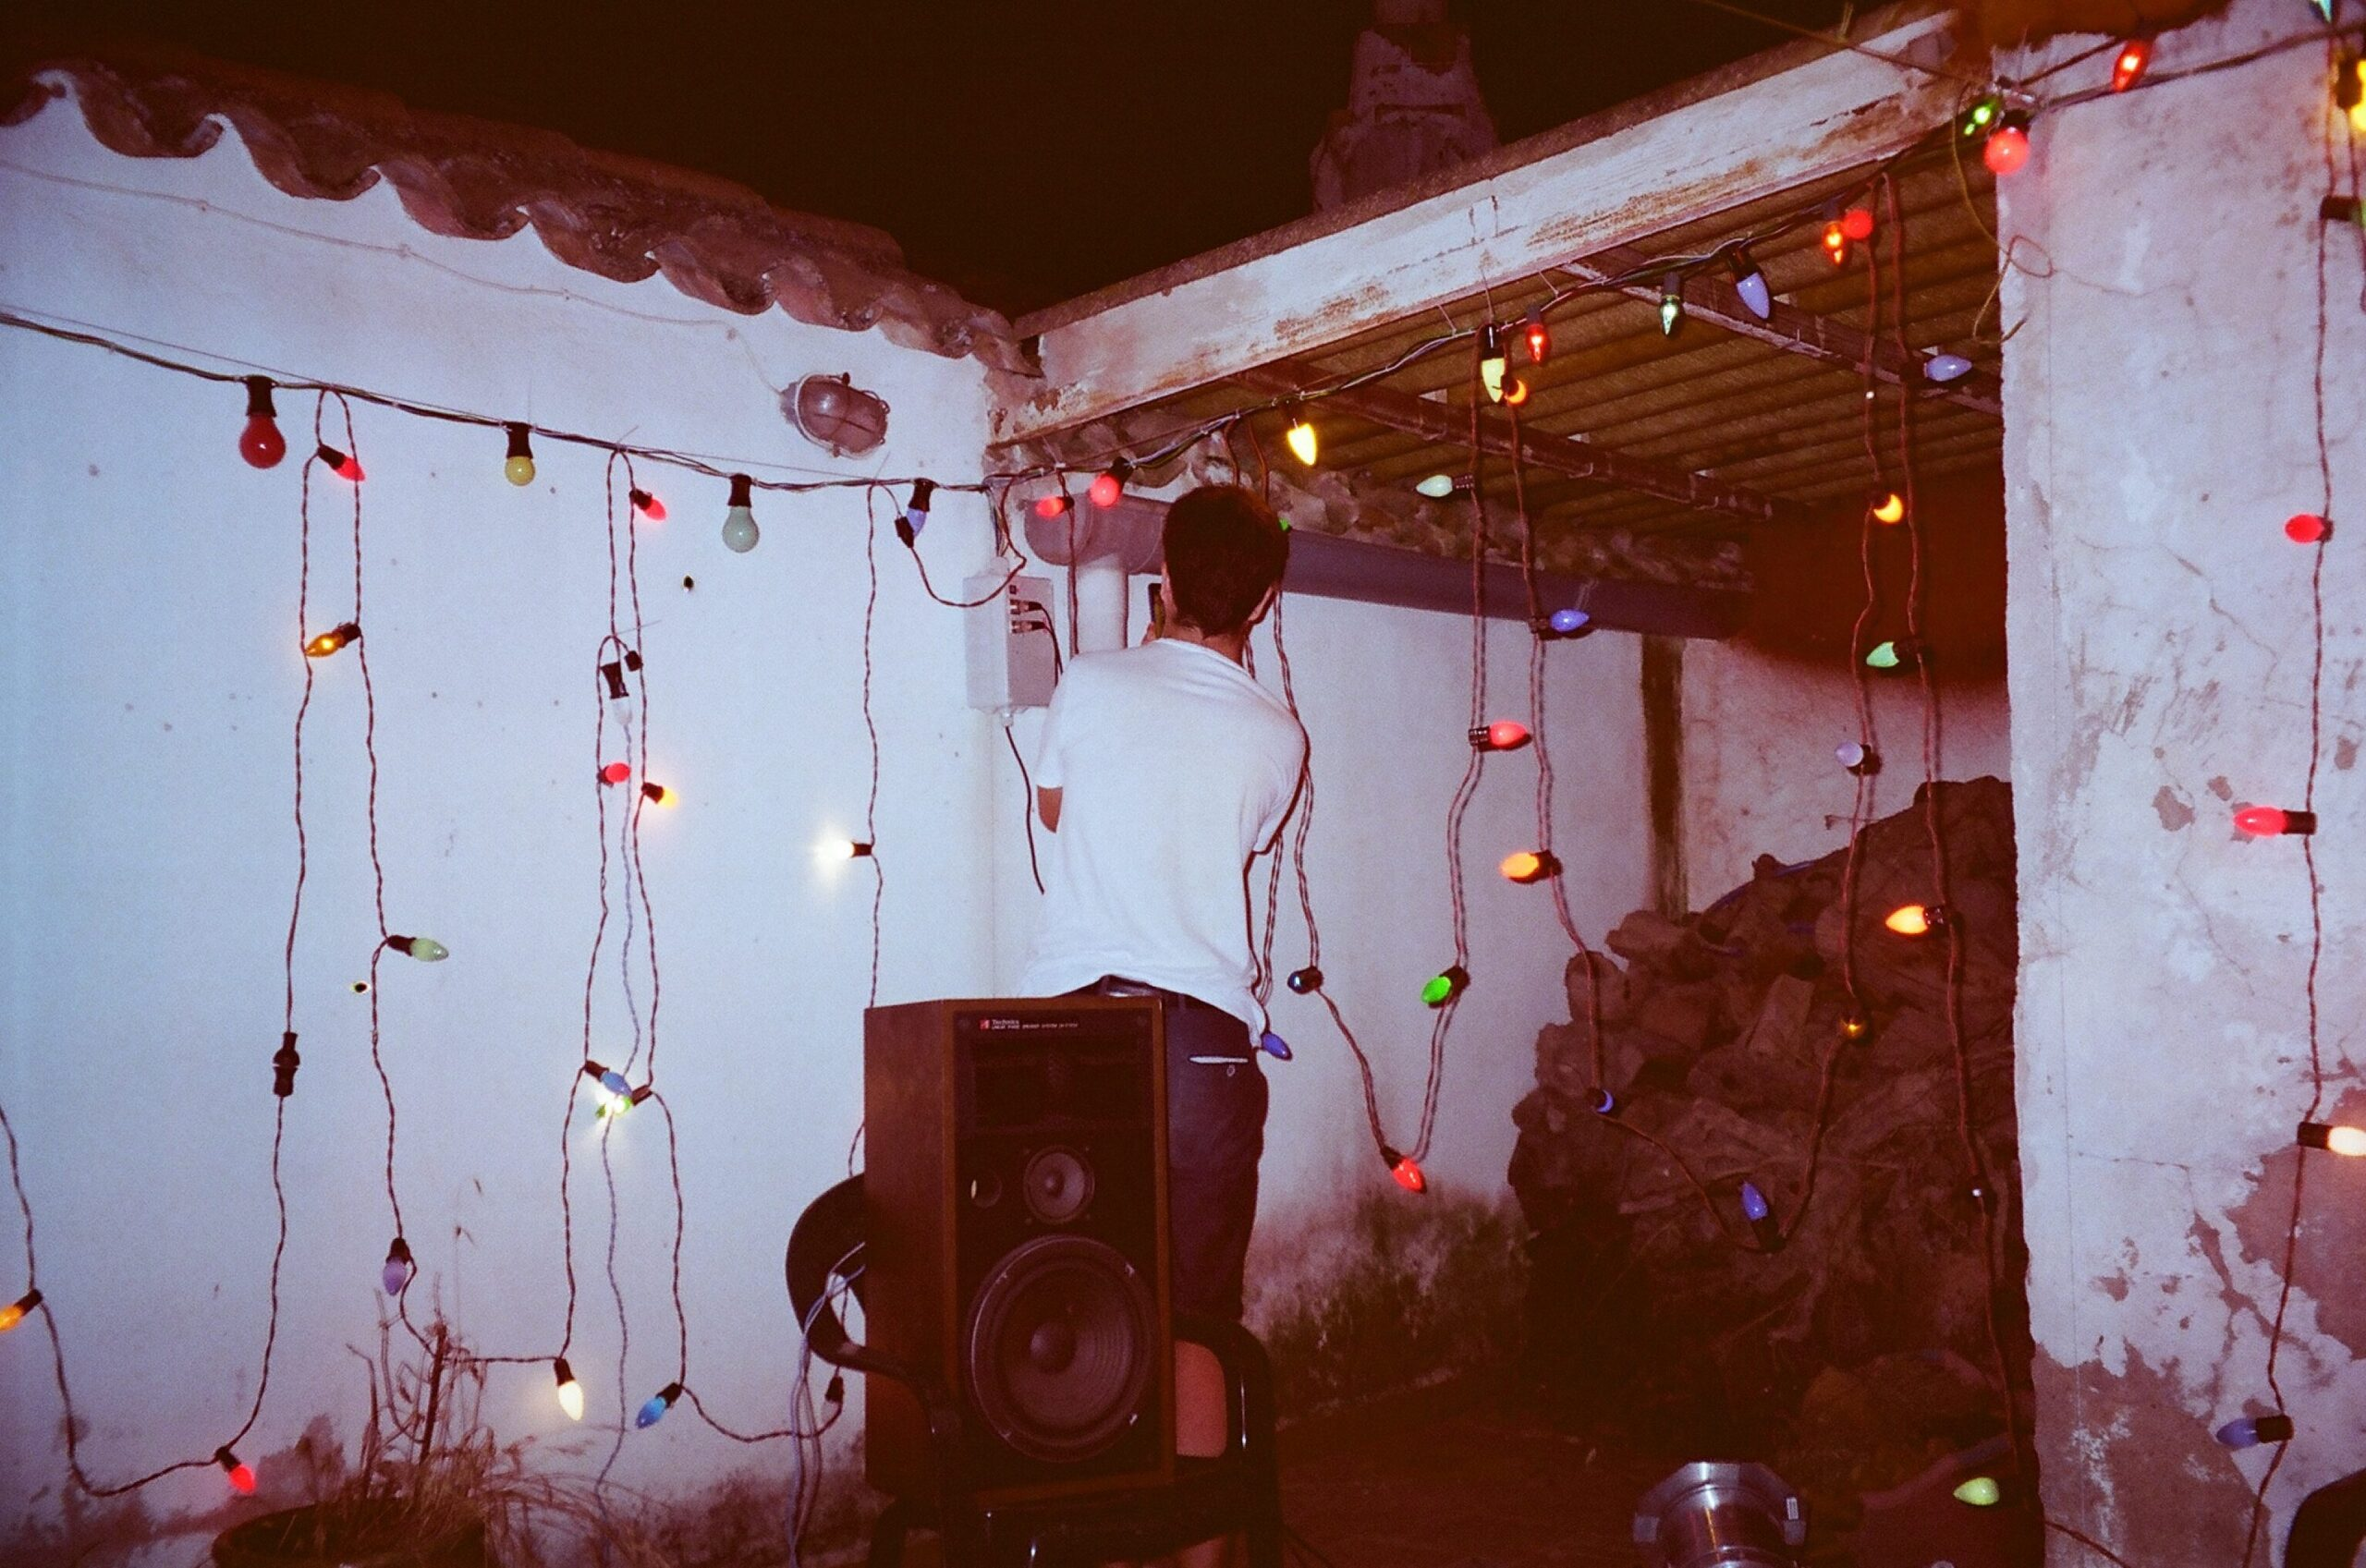 Roberto sets up a series of coloured fairy lights in the corner of an old patio.